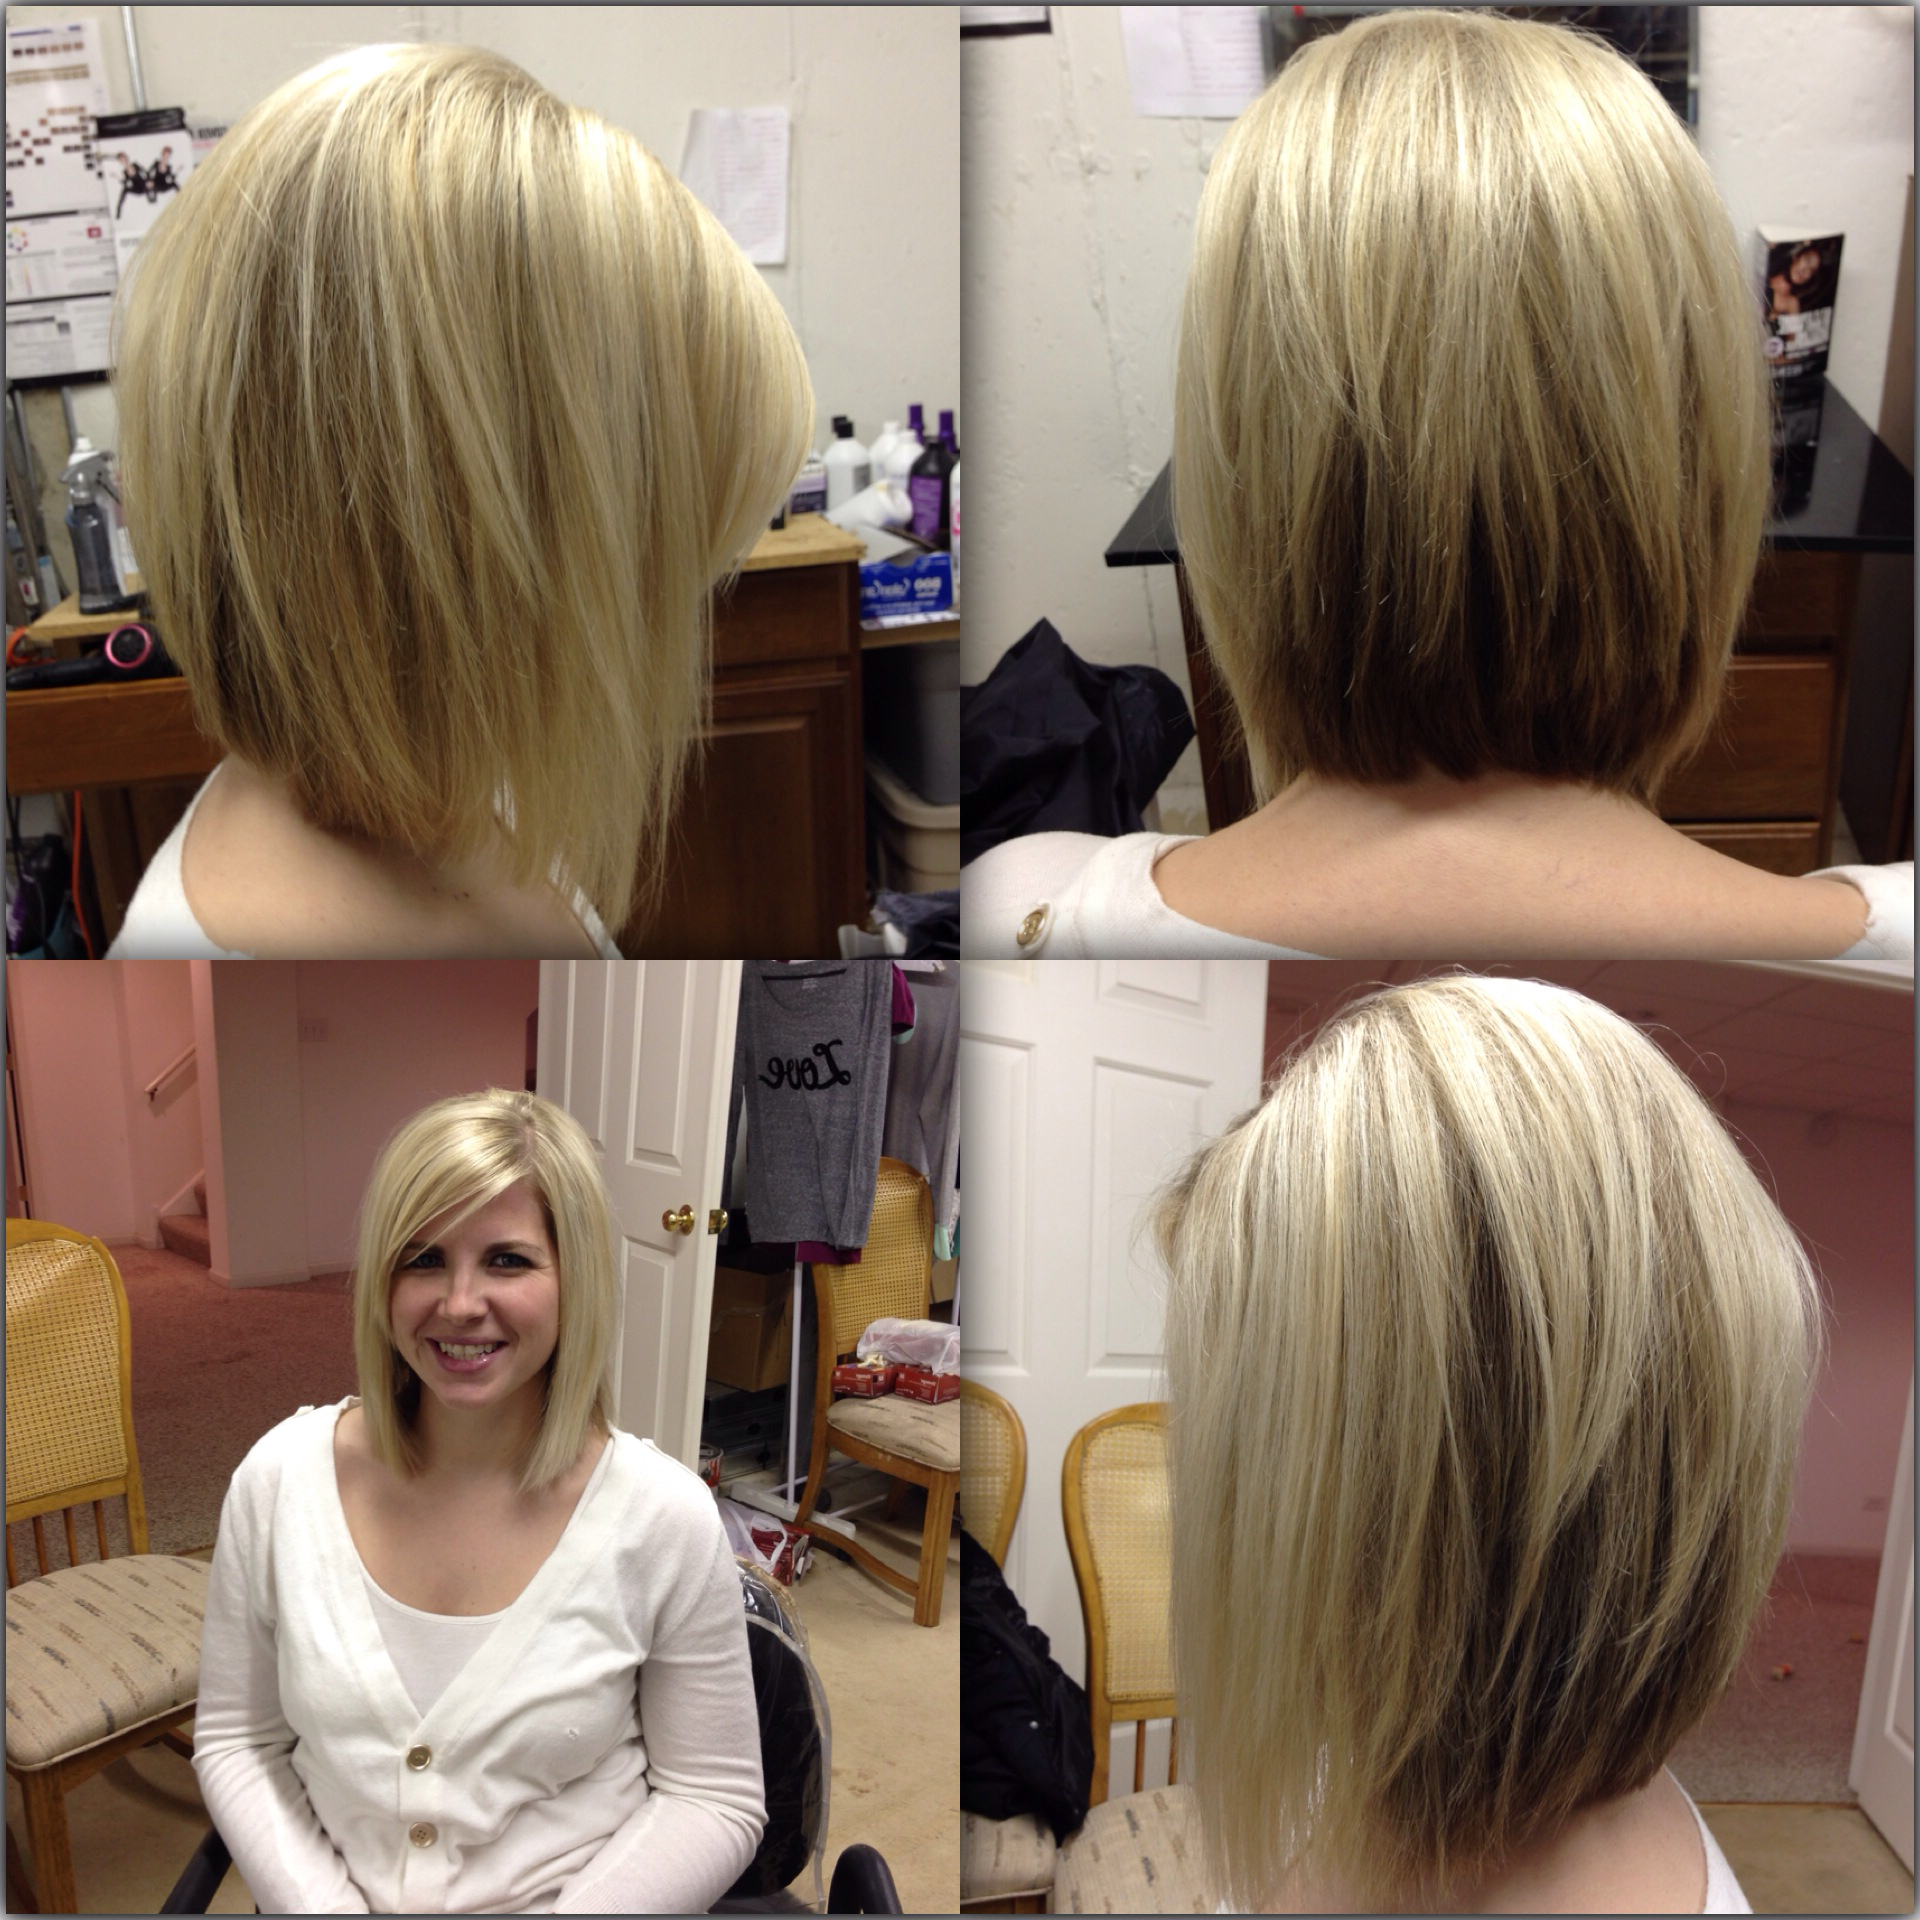 Extraordinary Angled Bangs Hairstyles In Angled Bobs With Bangs Pertaining To Inverted Bob Hairstyles With Swoopy Layers (View 14 of 20)